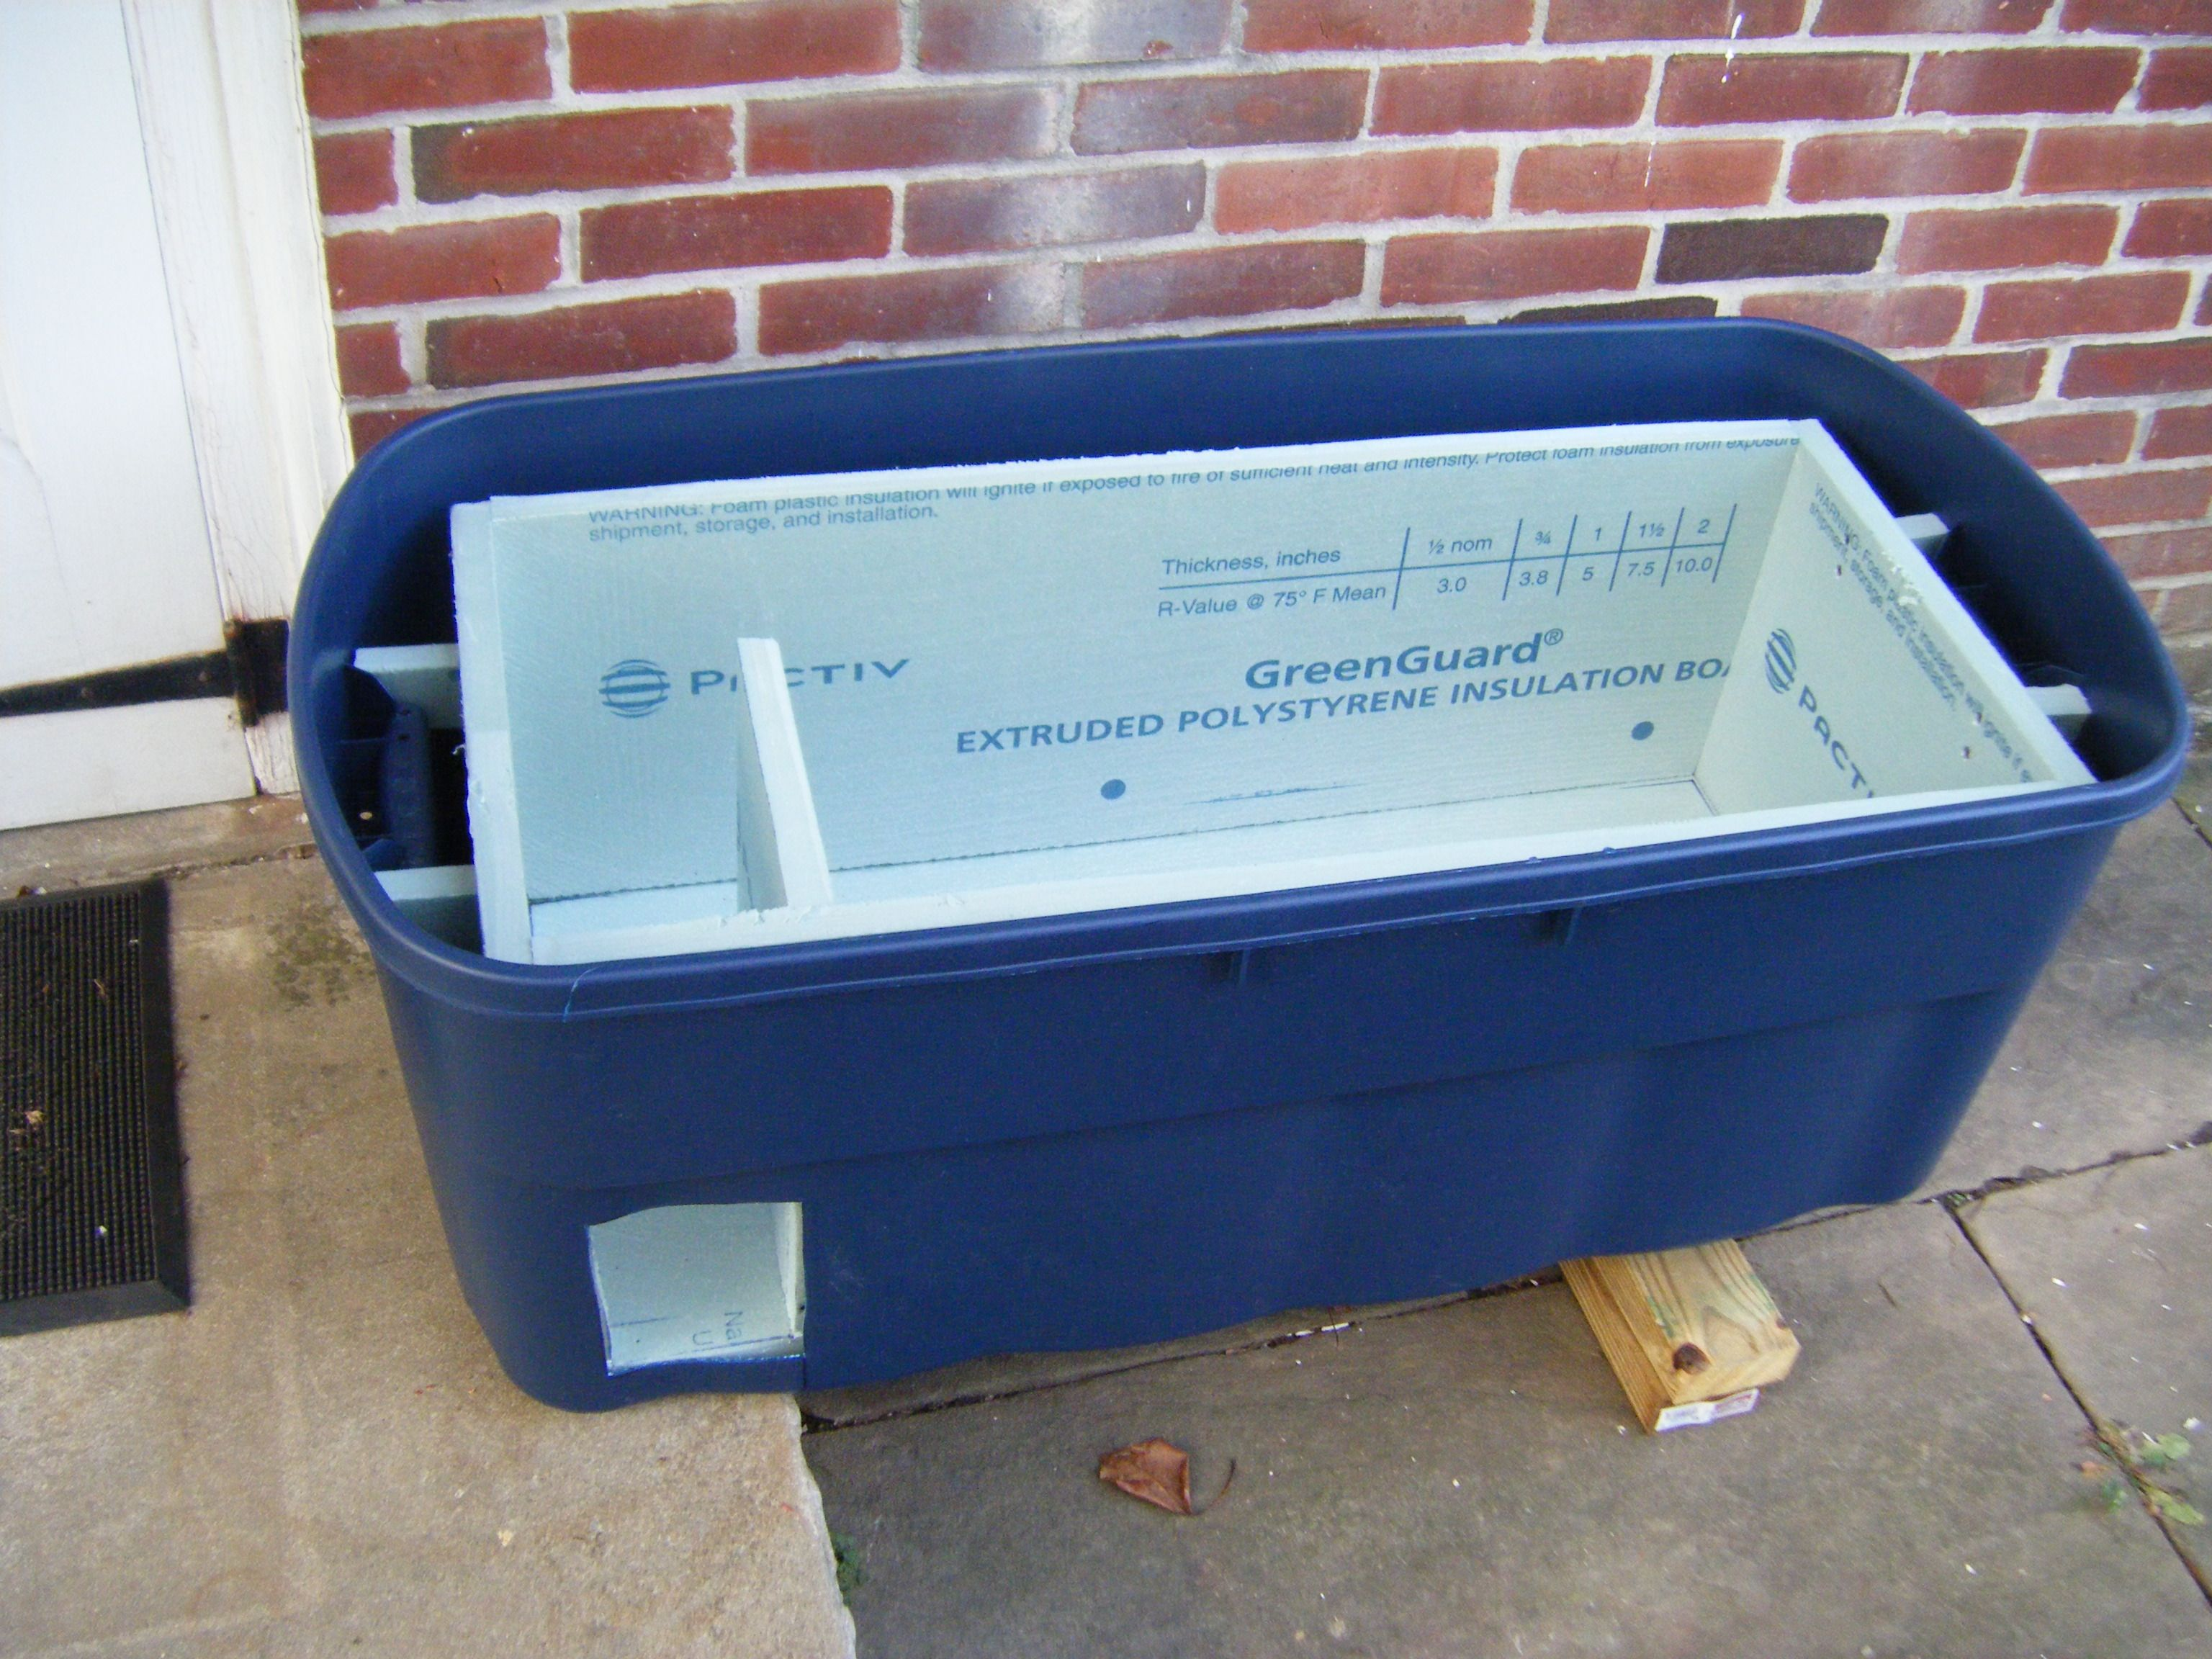 Cat Shelter Using 1 Inch Foam Insulation 2 Inch Drywall Screws And A Plastic Storage Bin Plastic Storage Bins Storage Bins Extruded Polystyrene Insulation